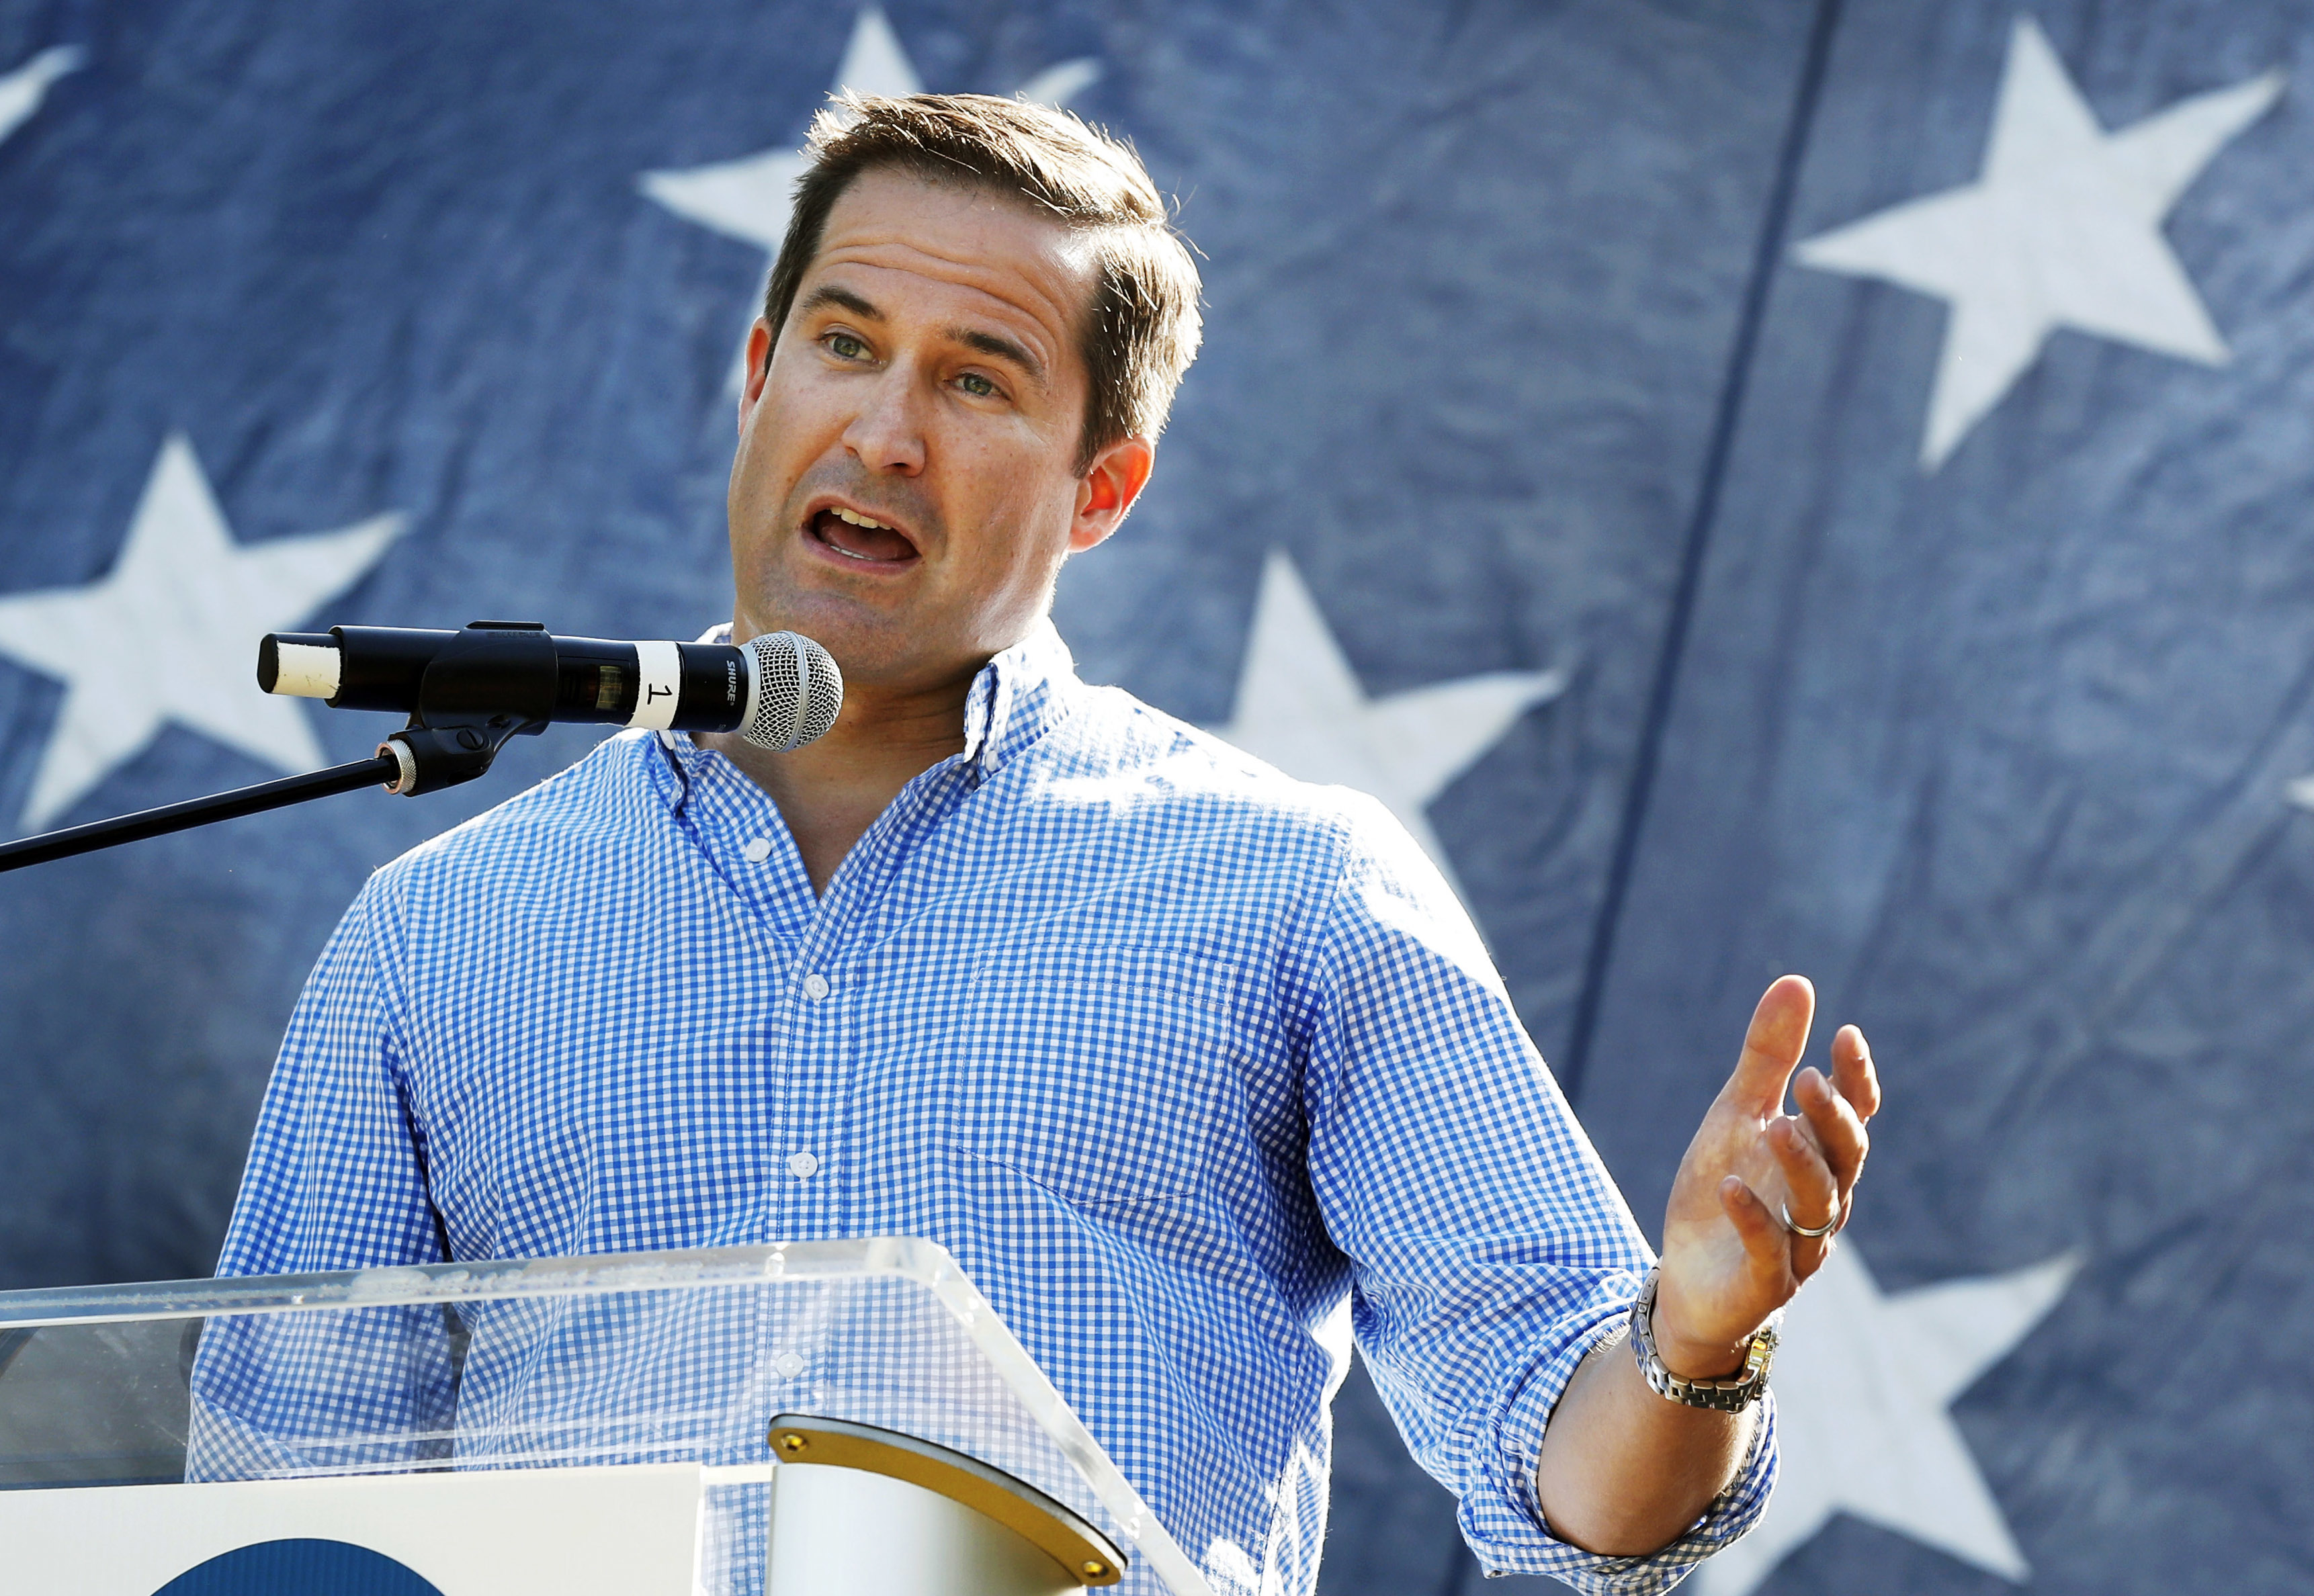 Rep. Seth Moulton, D-Mass., speaks during an Iowa event in September 2017. After serving four tours of duty in Iraq and ousting a sitting member of Congress in 2014, Moulton has become one of a handful of prominent veteran lawmakers in Congress. (Charlie Neibergall/AP)